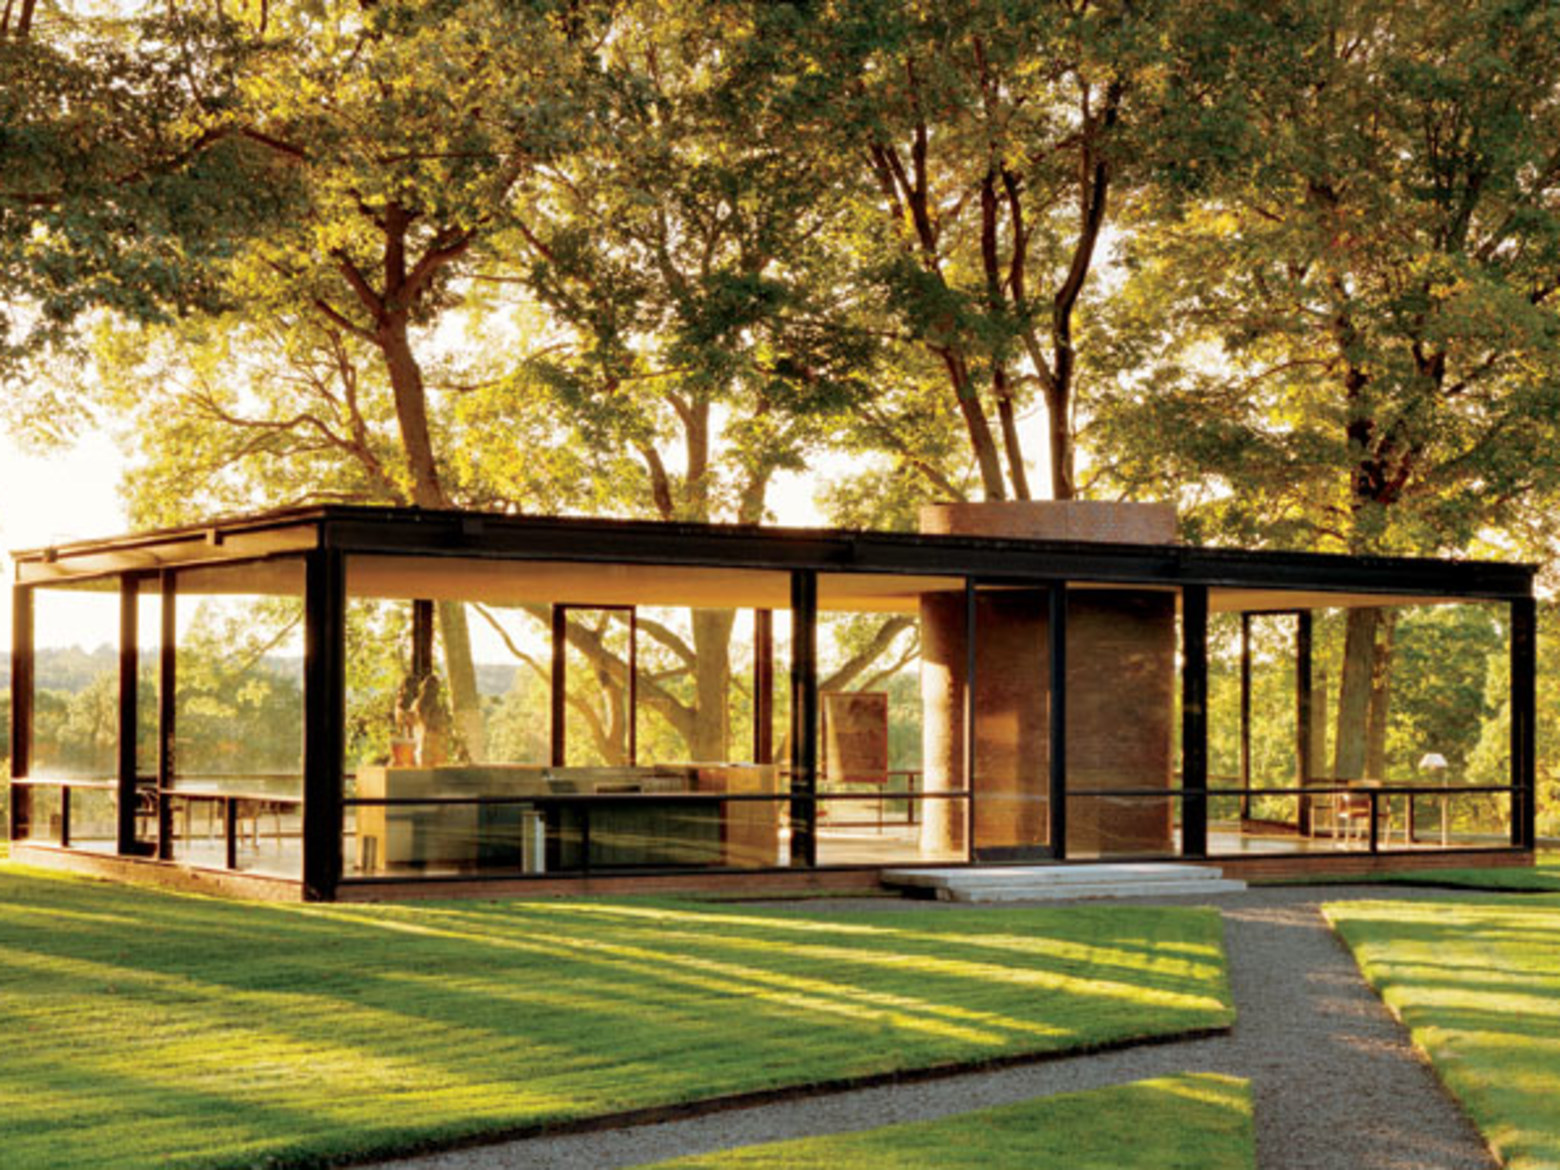 Philip Johnson's Glass House. New Canaan, Connecticut.http://www.llnyc.com/48882-5-modernist-masterpiece-perfect-for-your-dream-wedding